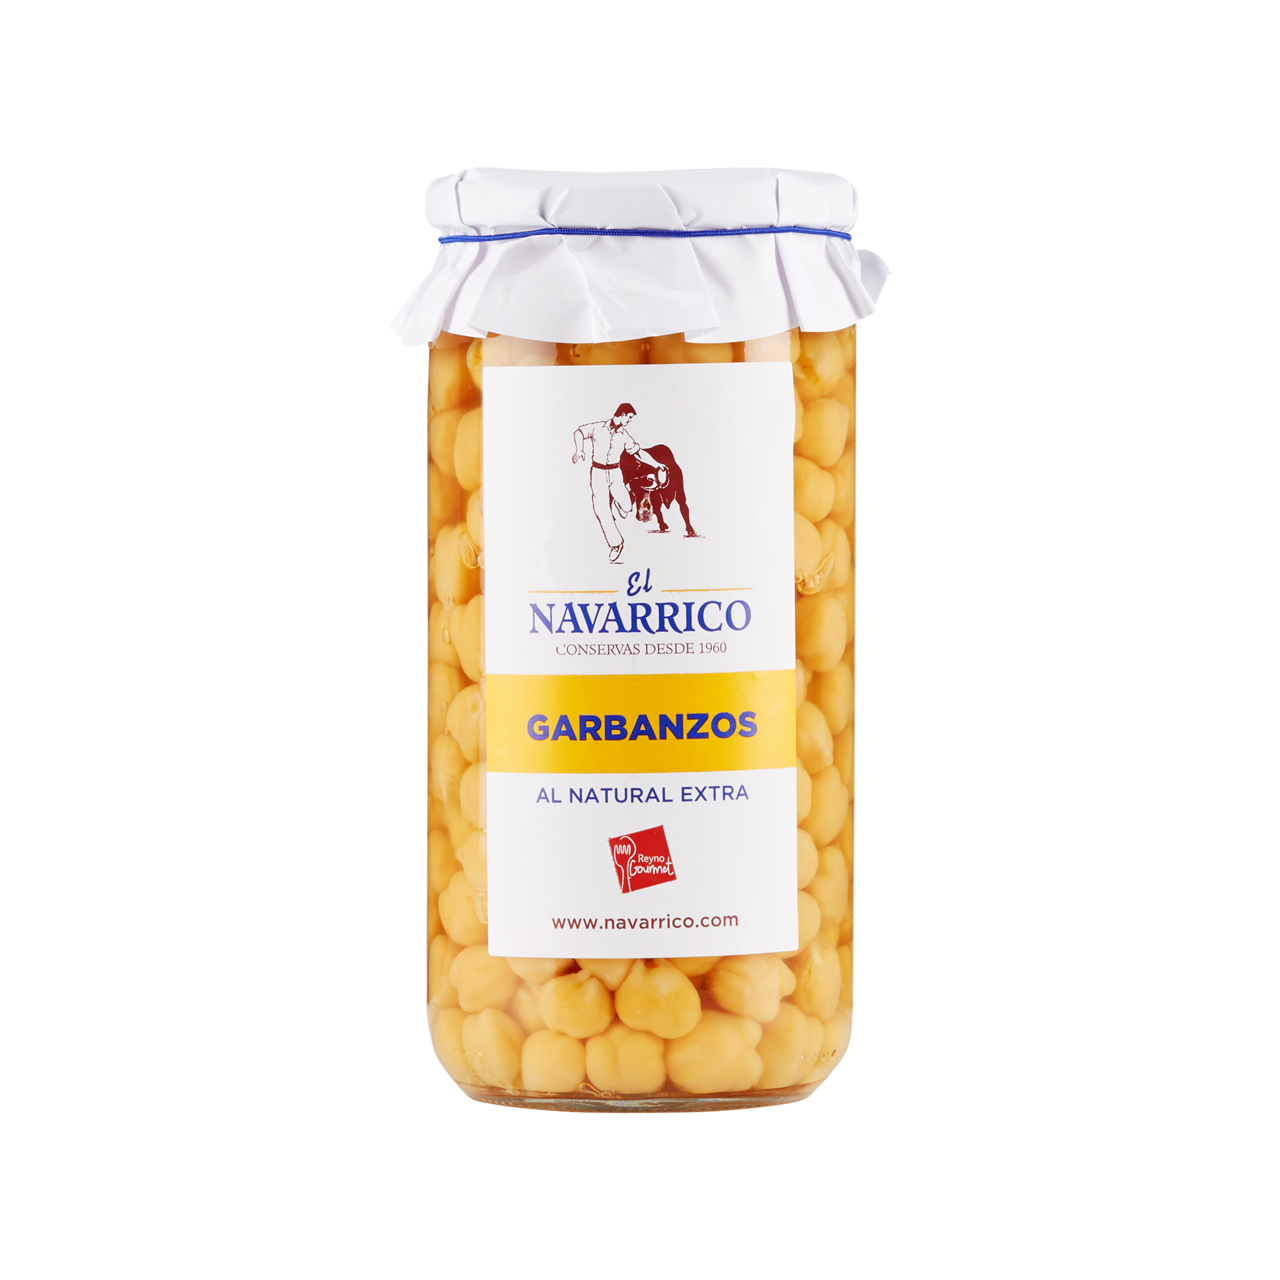 garbanzos (large chick peas)